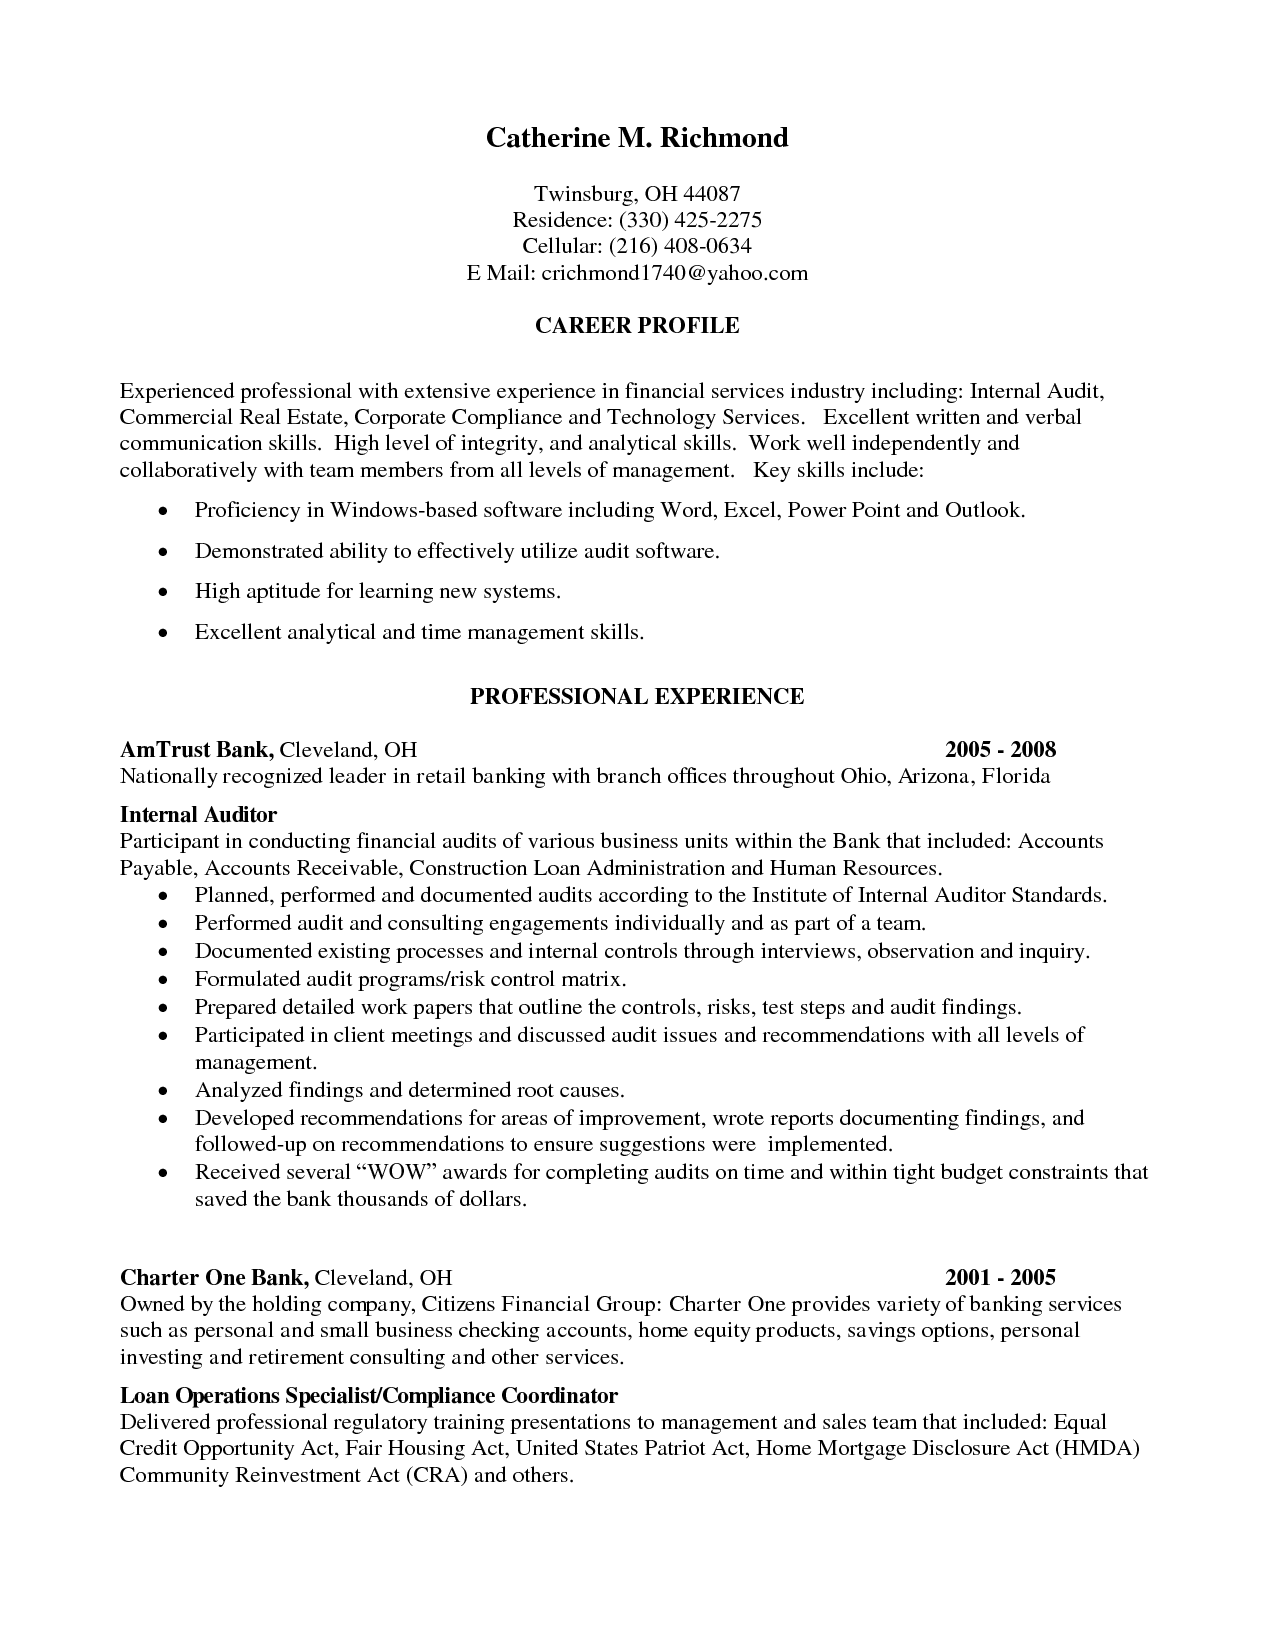 Internal Auditor Resume Best Template Collection Rakesh